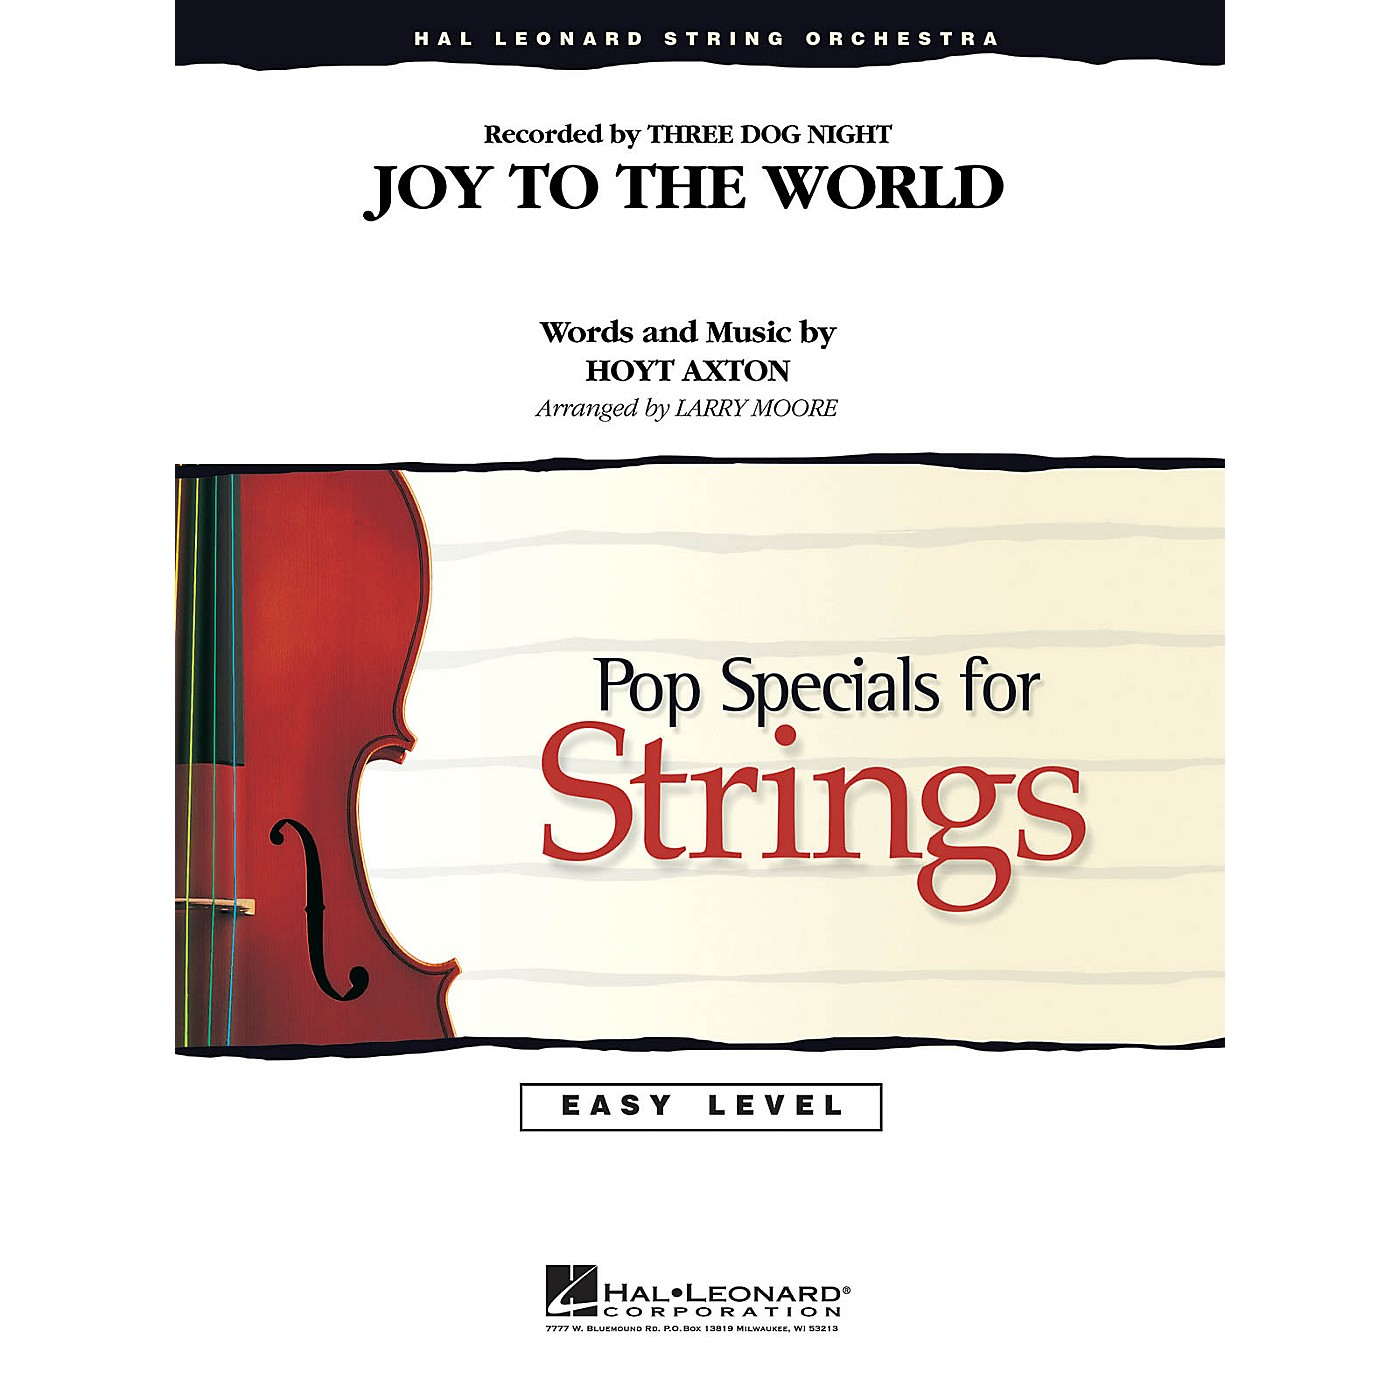 Hal Leonard Joy to the World Easy Pop Specials For Strings Series by Three Dog Night Arranged by Larry Moore thumbnail